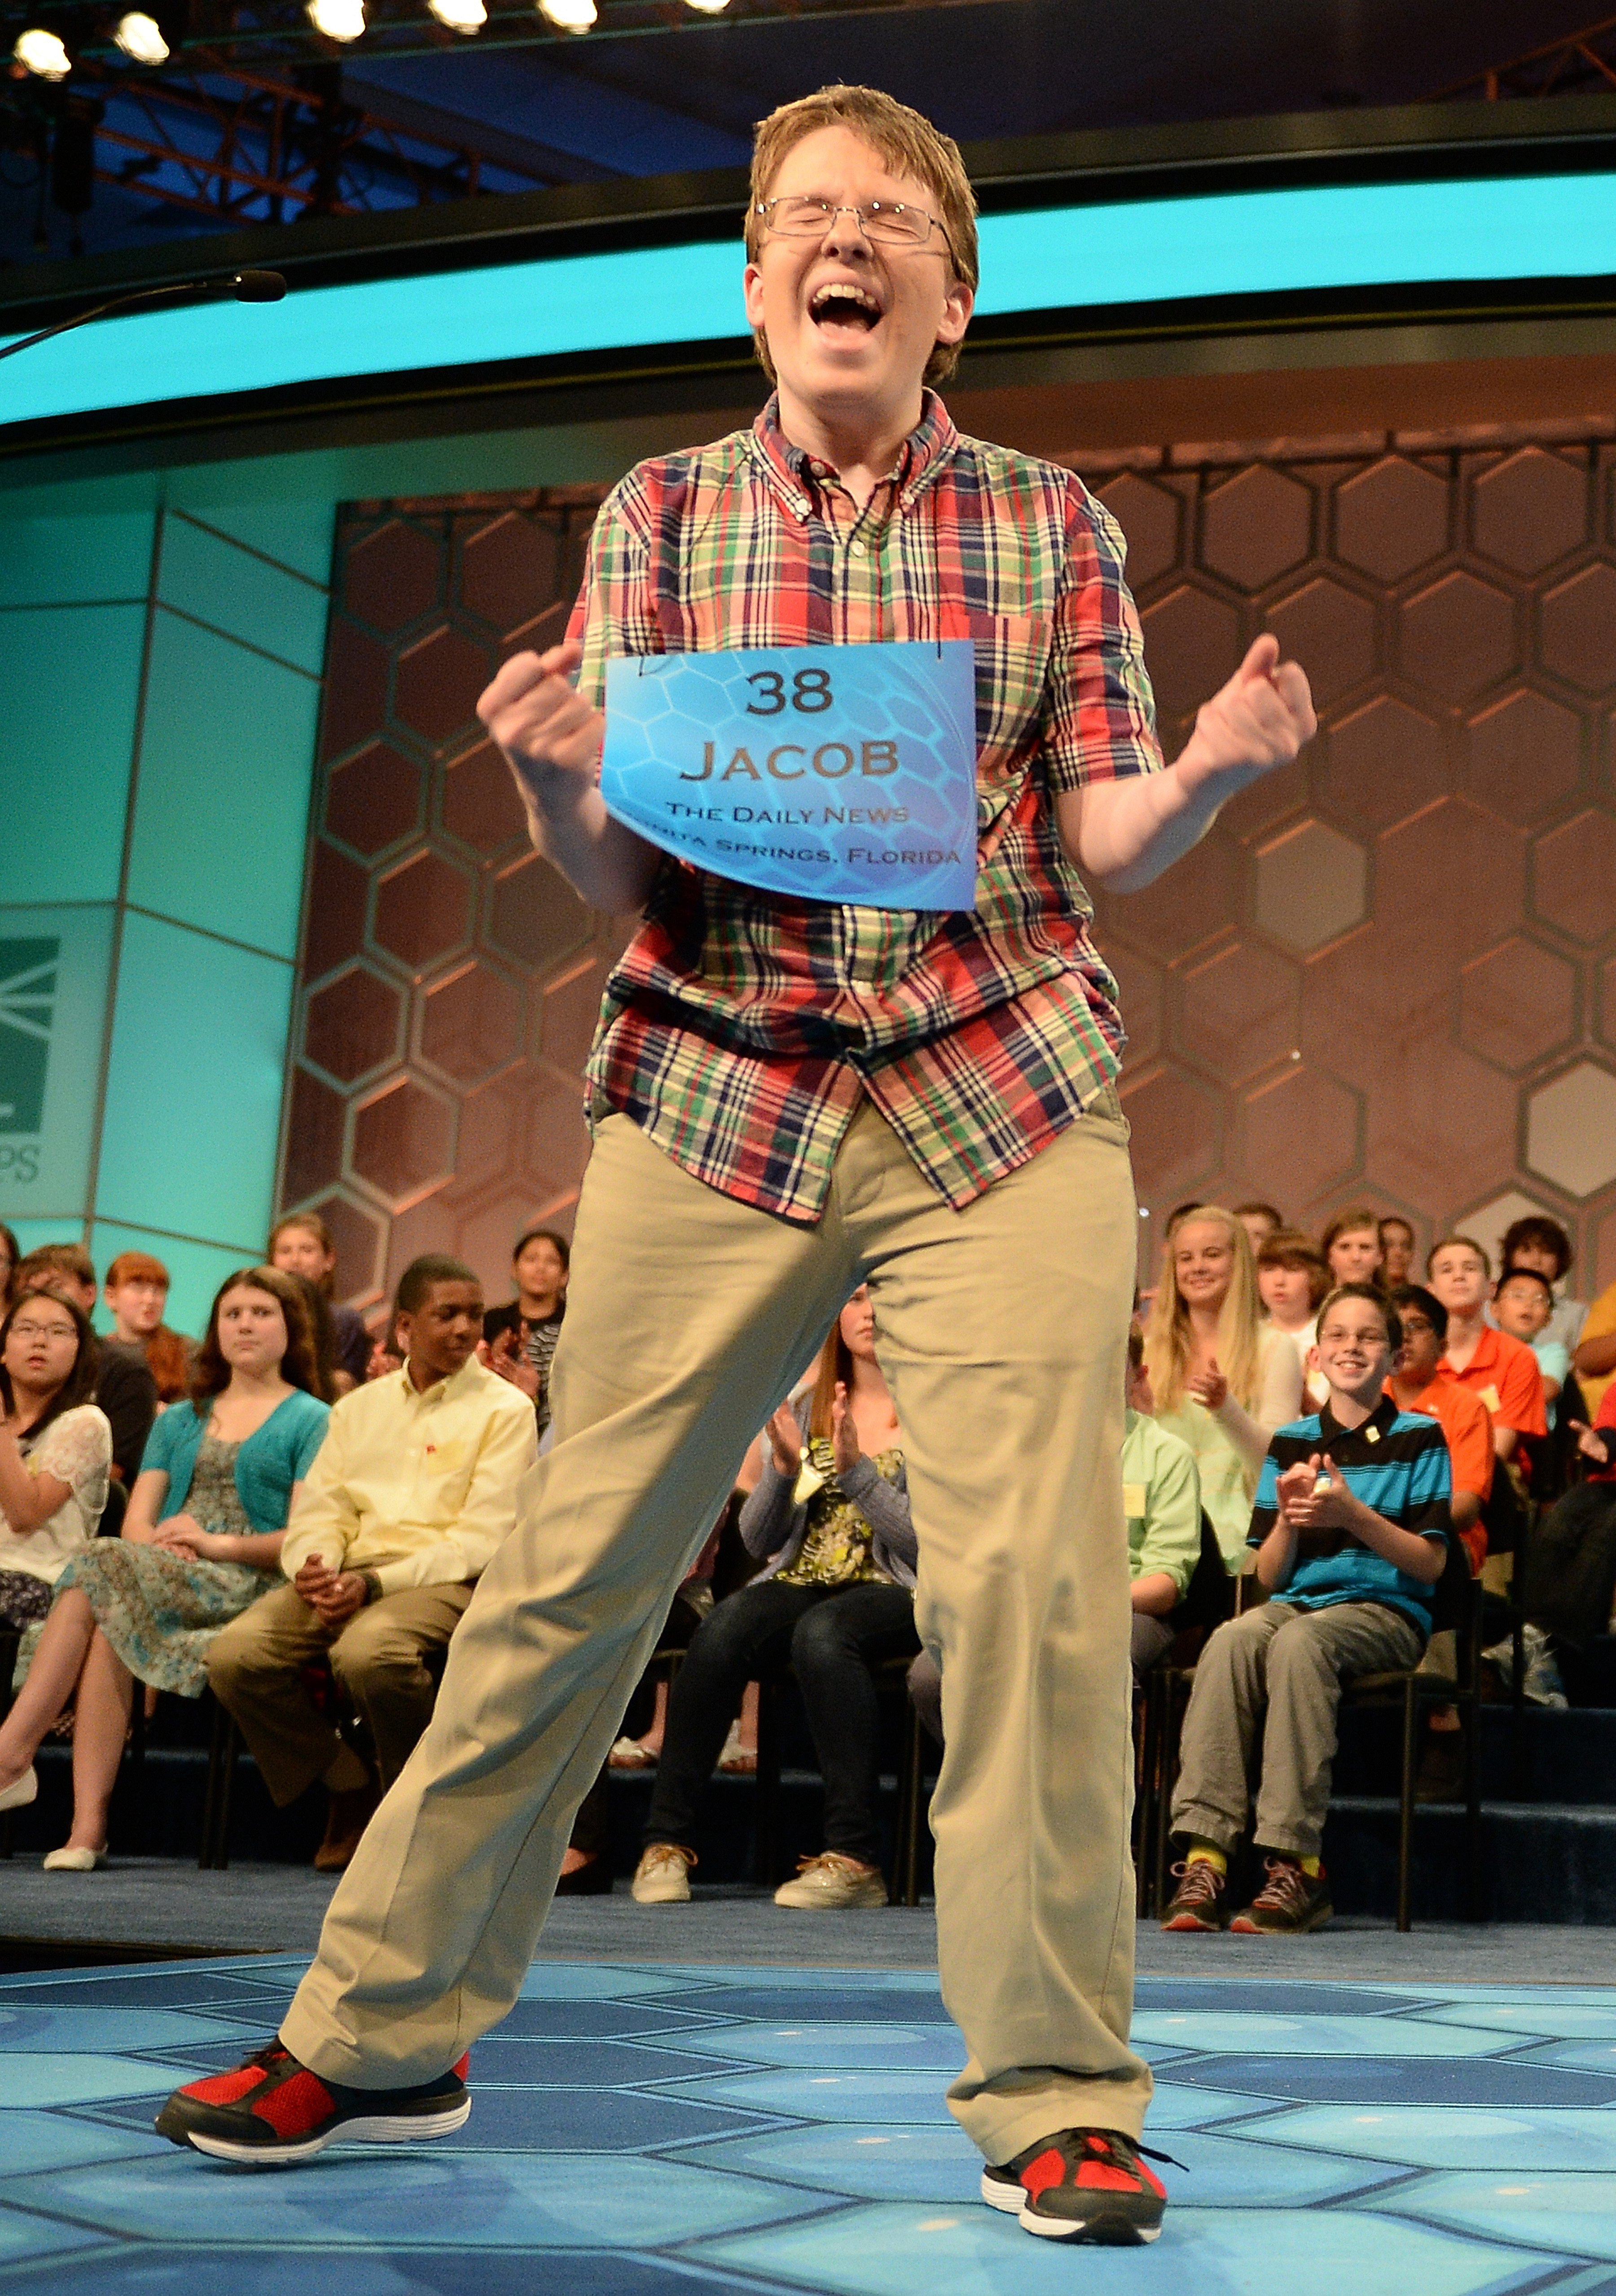 Speller Jacob Williamson, of Cape Coral, Fla., competes in the finals of the 2014 Scripps National Spelling Bee in National Harbor, Md. on May 29, 2014.